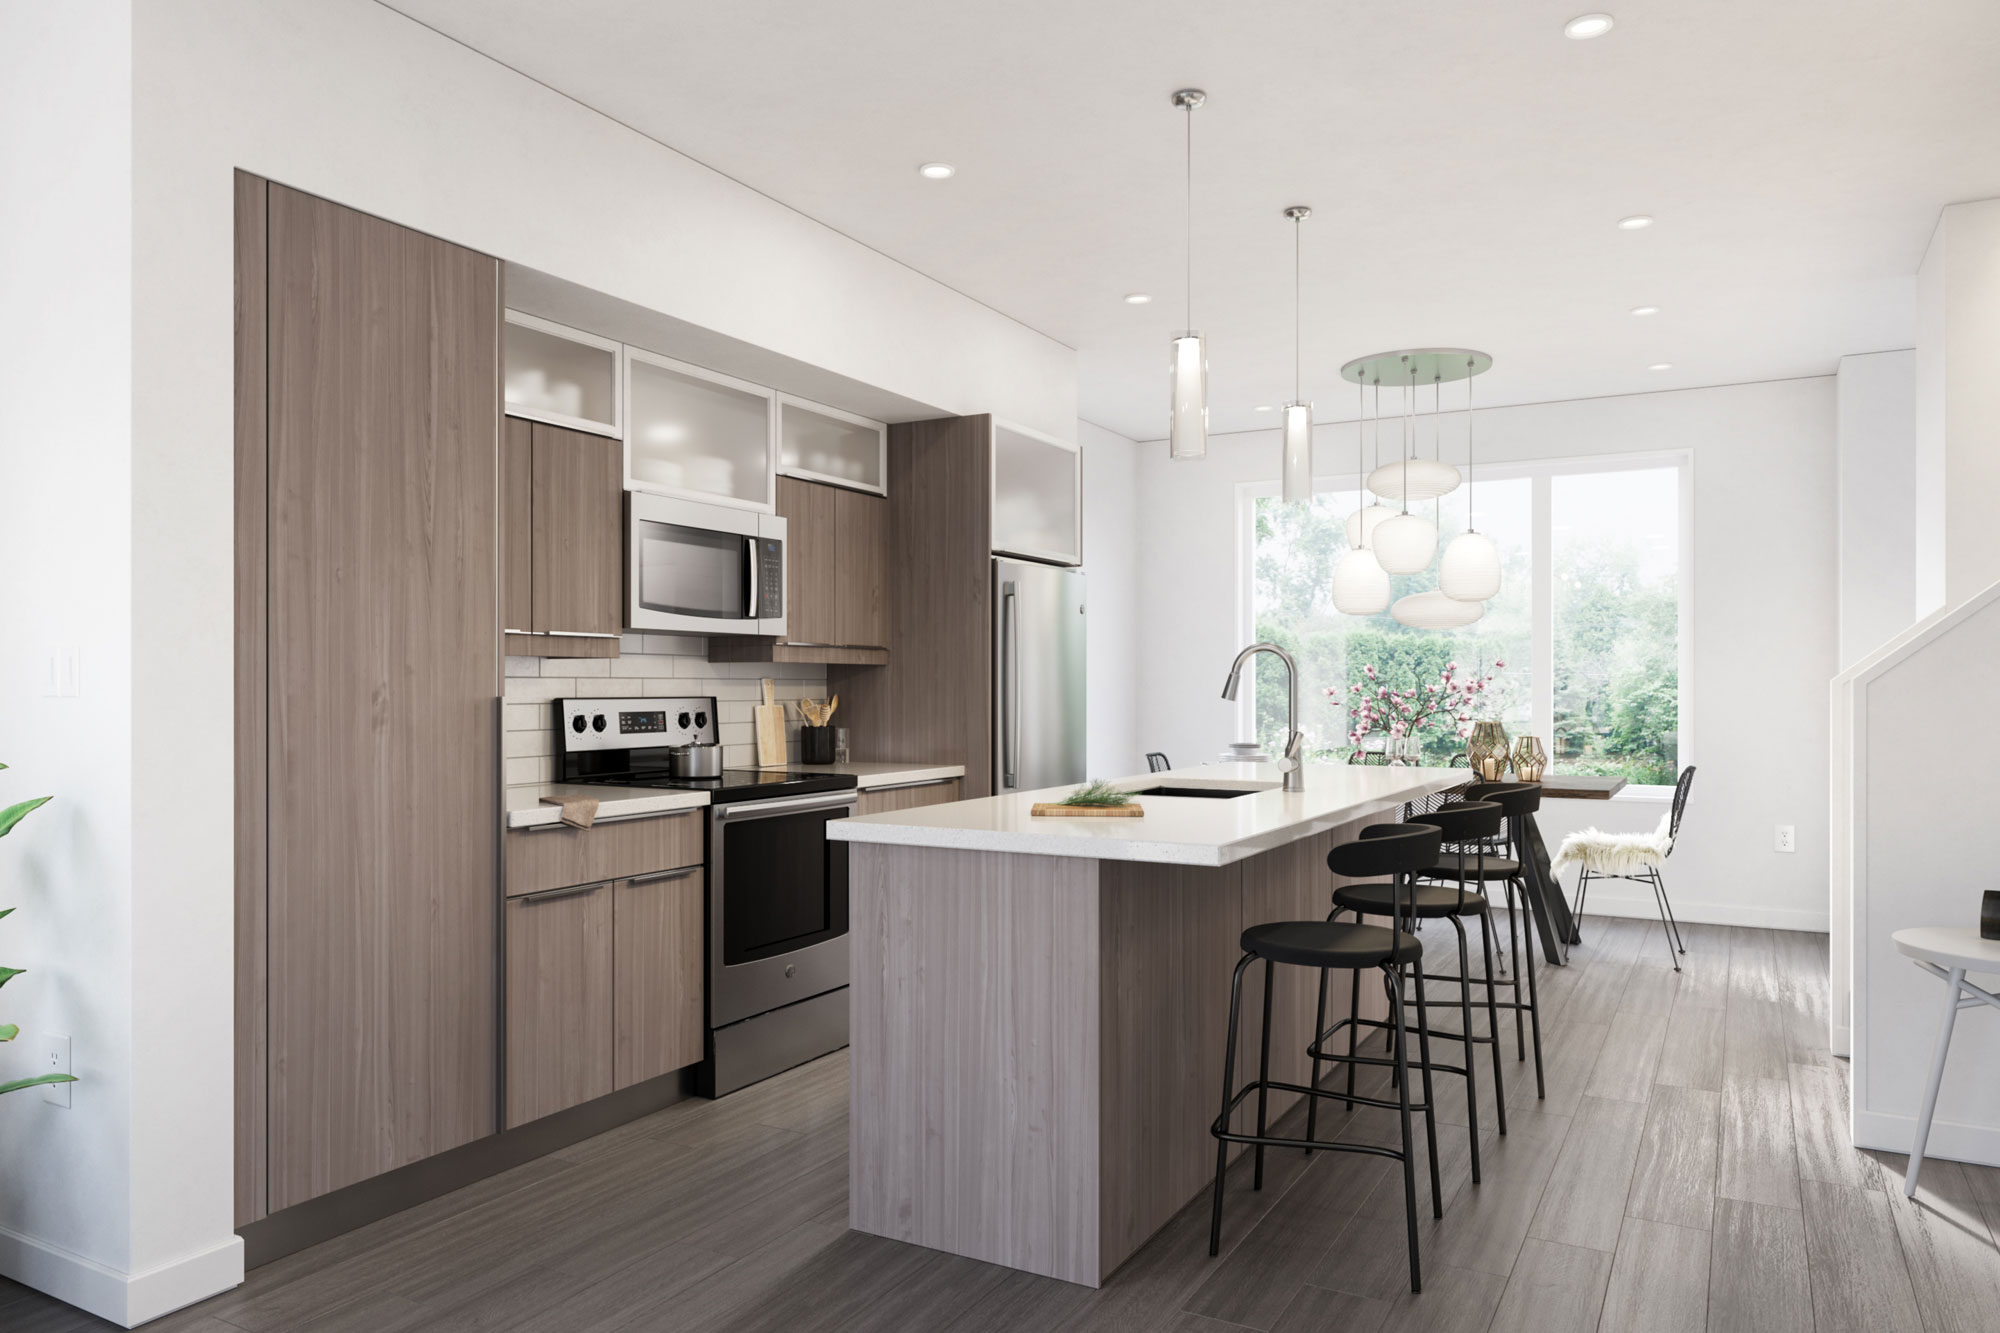 EQRES-99-Ave-Rendering-2000PX-INTERIOR_3